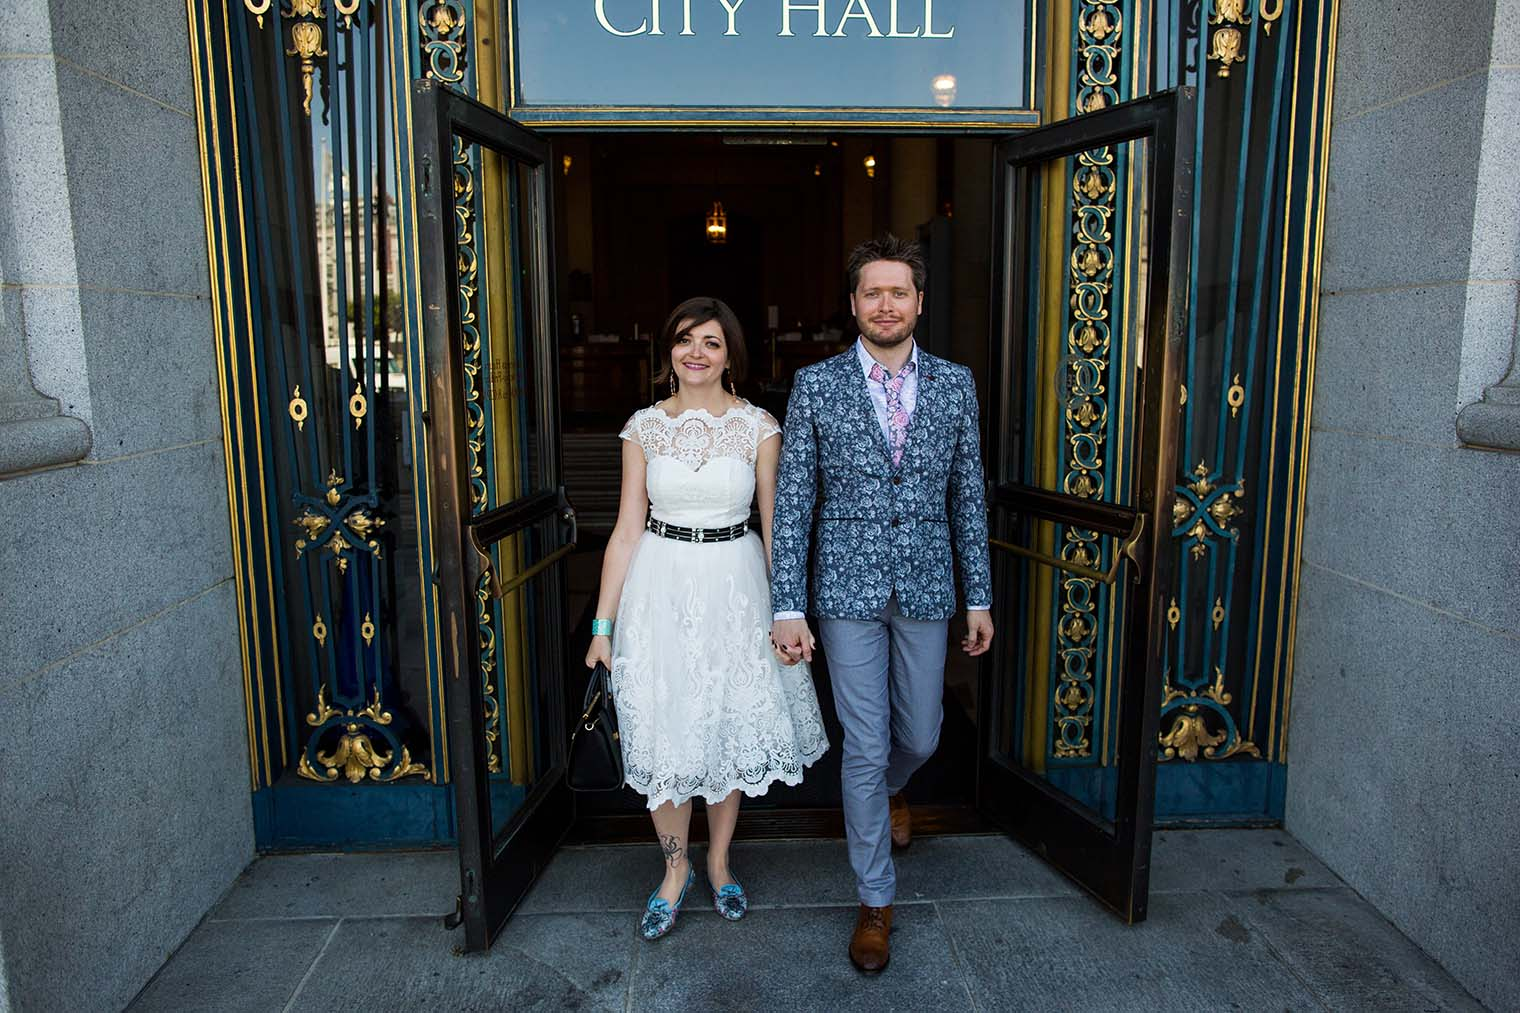 City Hall Wedding Photographer in San Francisco